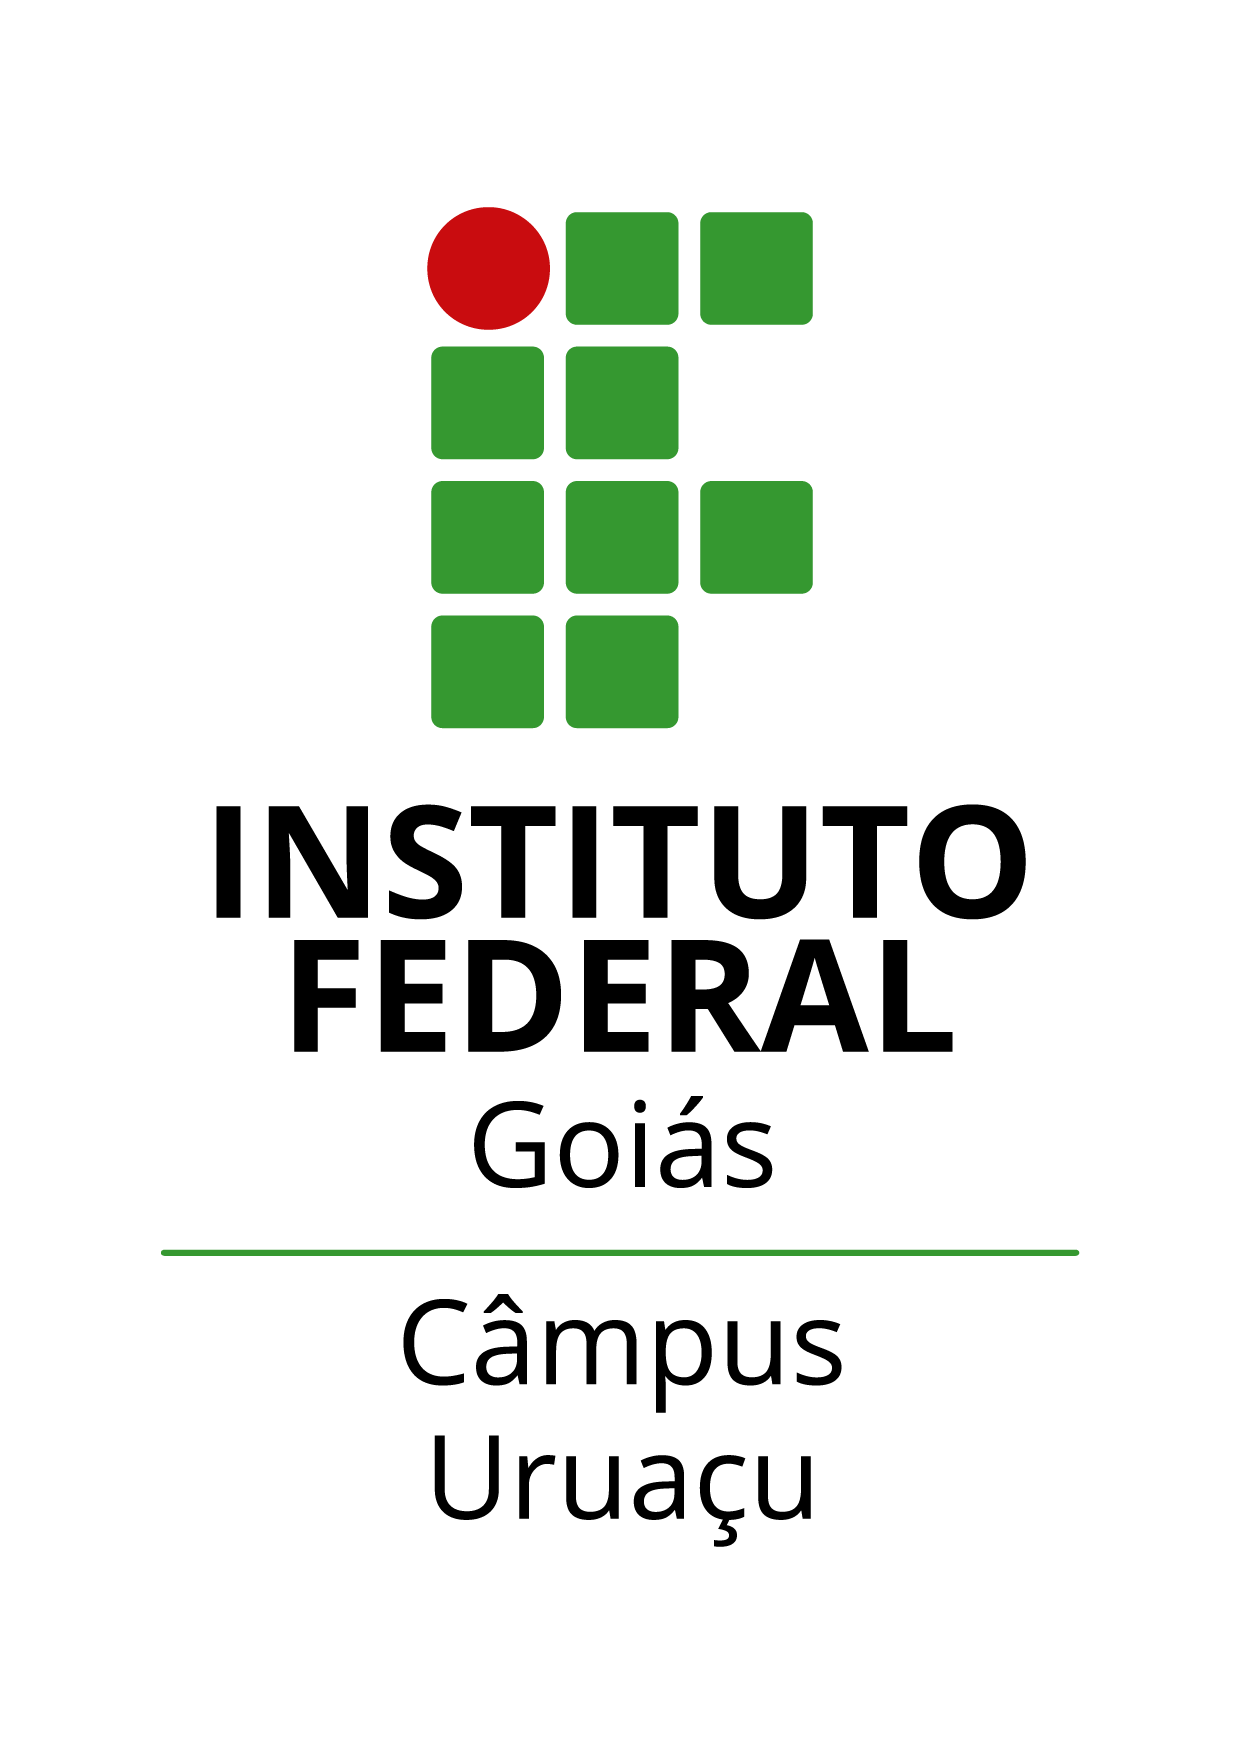 Logo do IFG - Câmpus Uruaçu